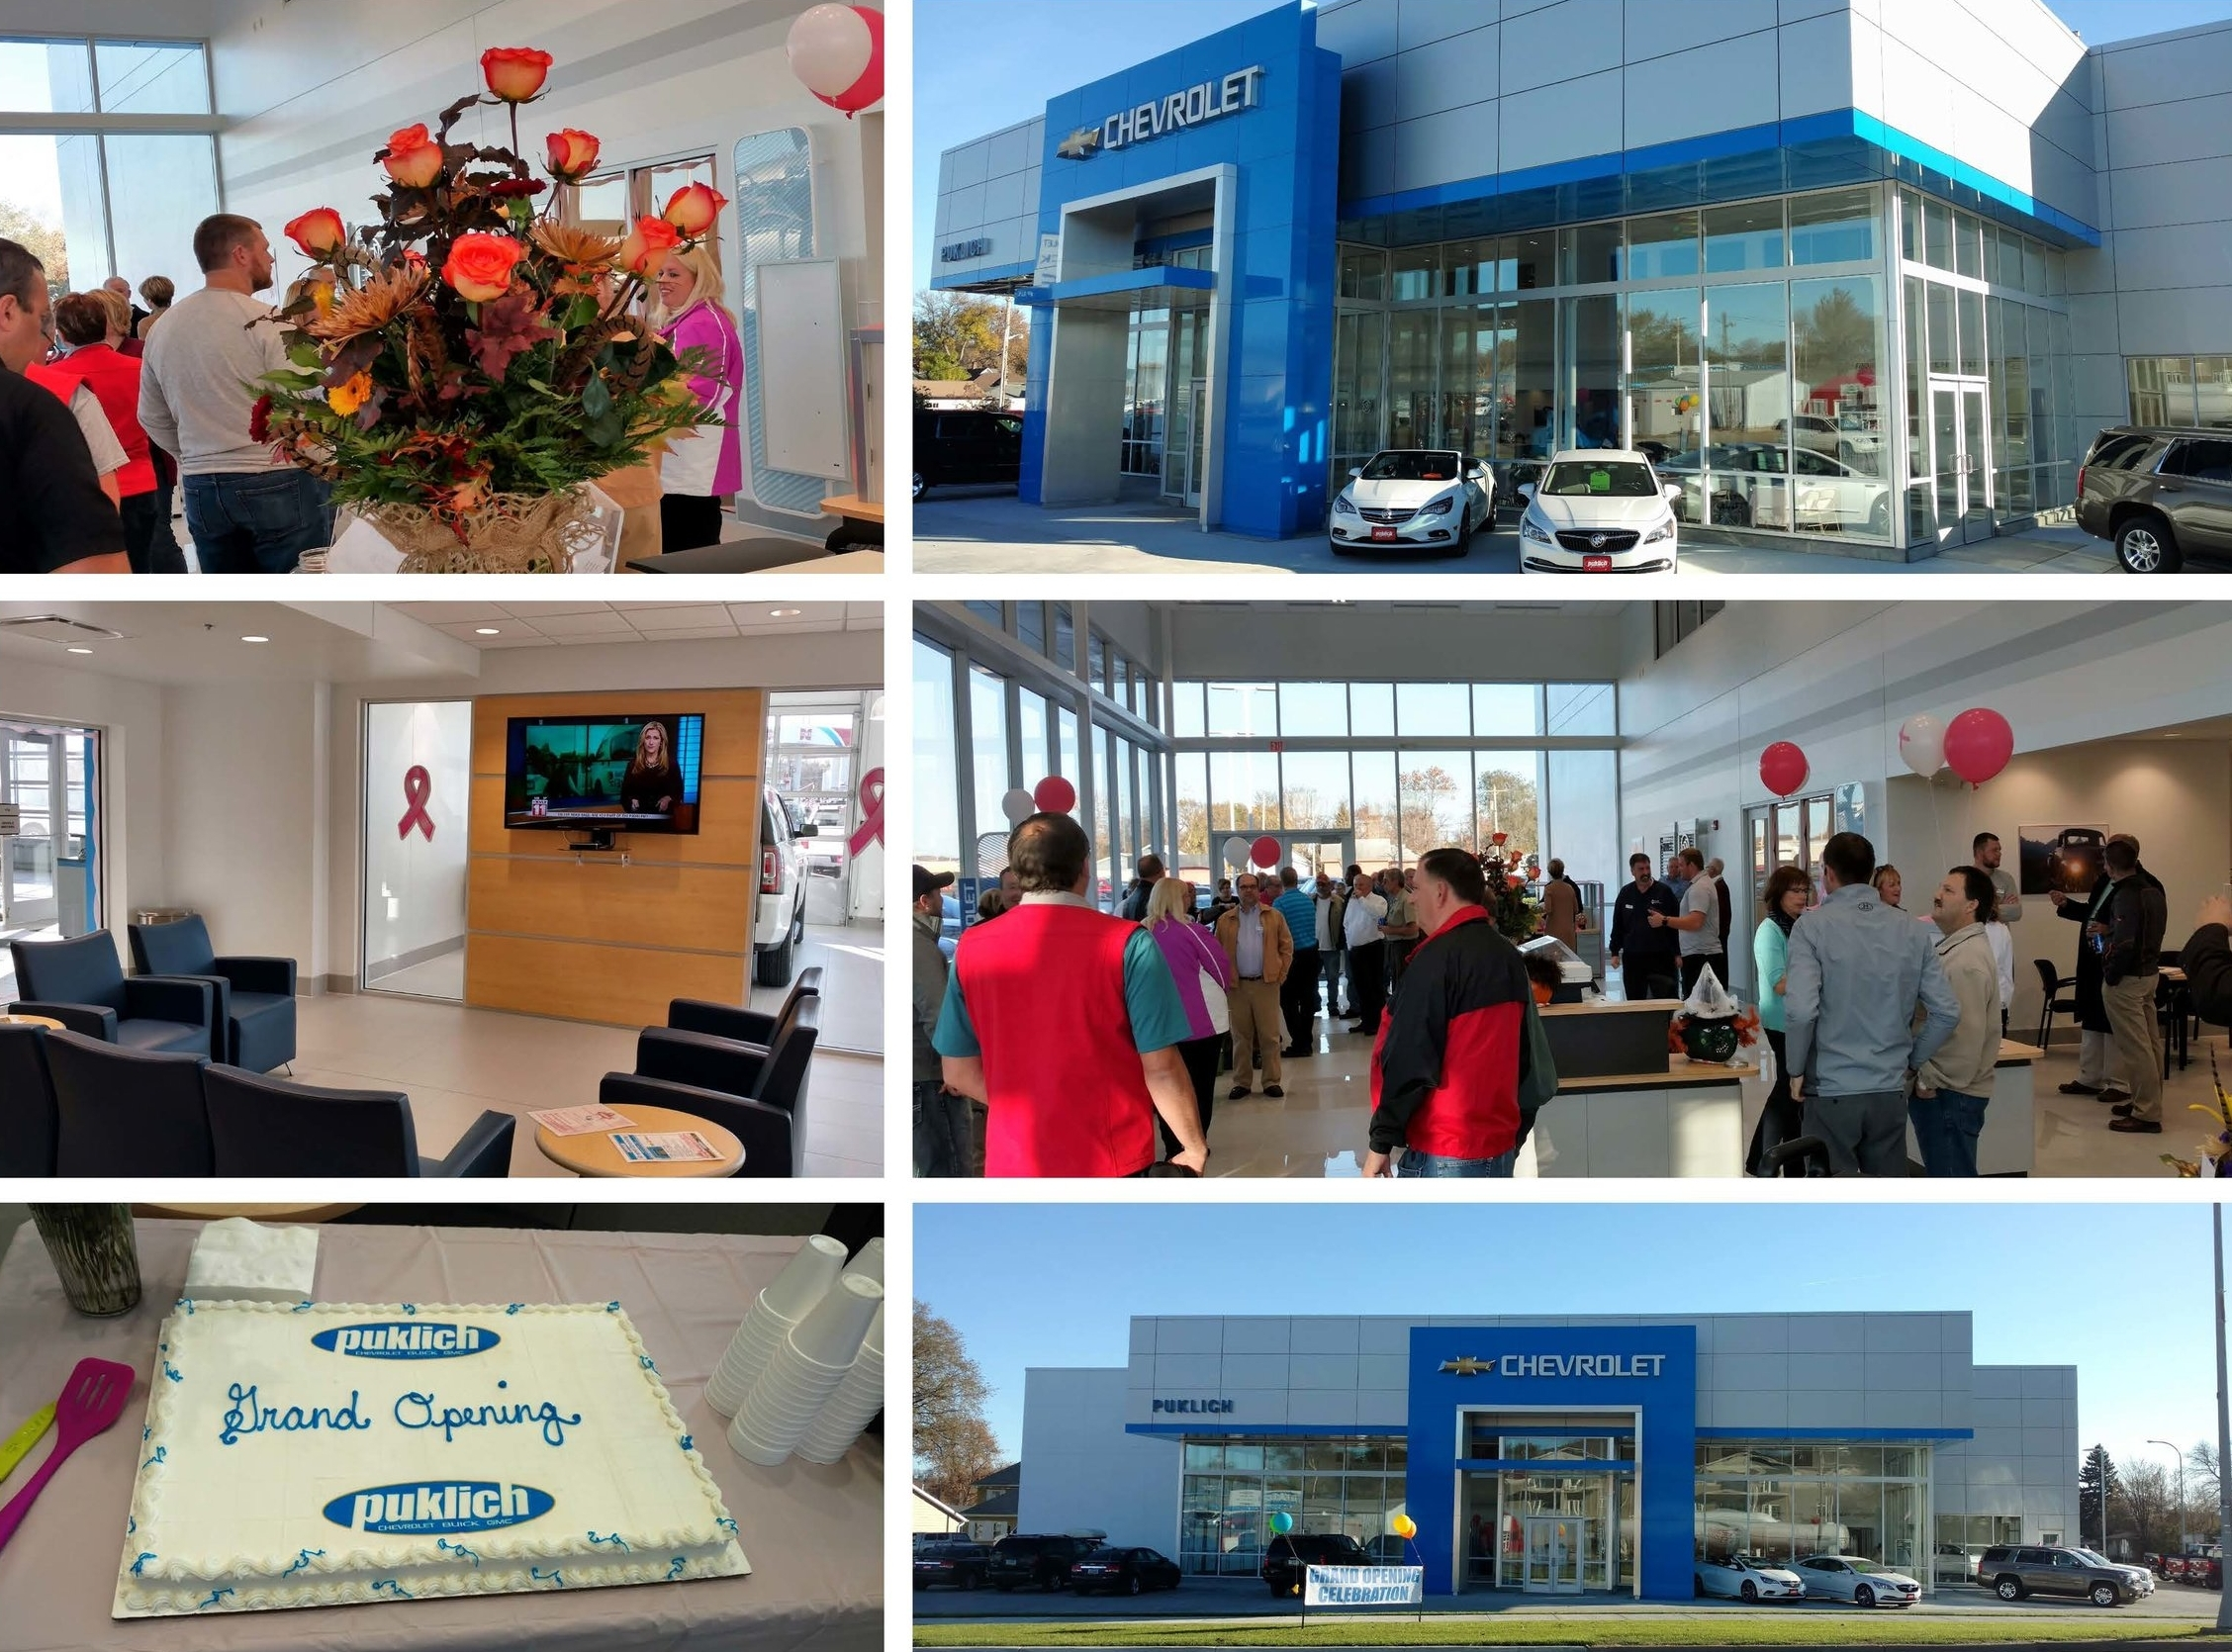 Puklich Chevrolet Buick GMC Grand Opening Celebration in Valley City, ND